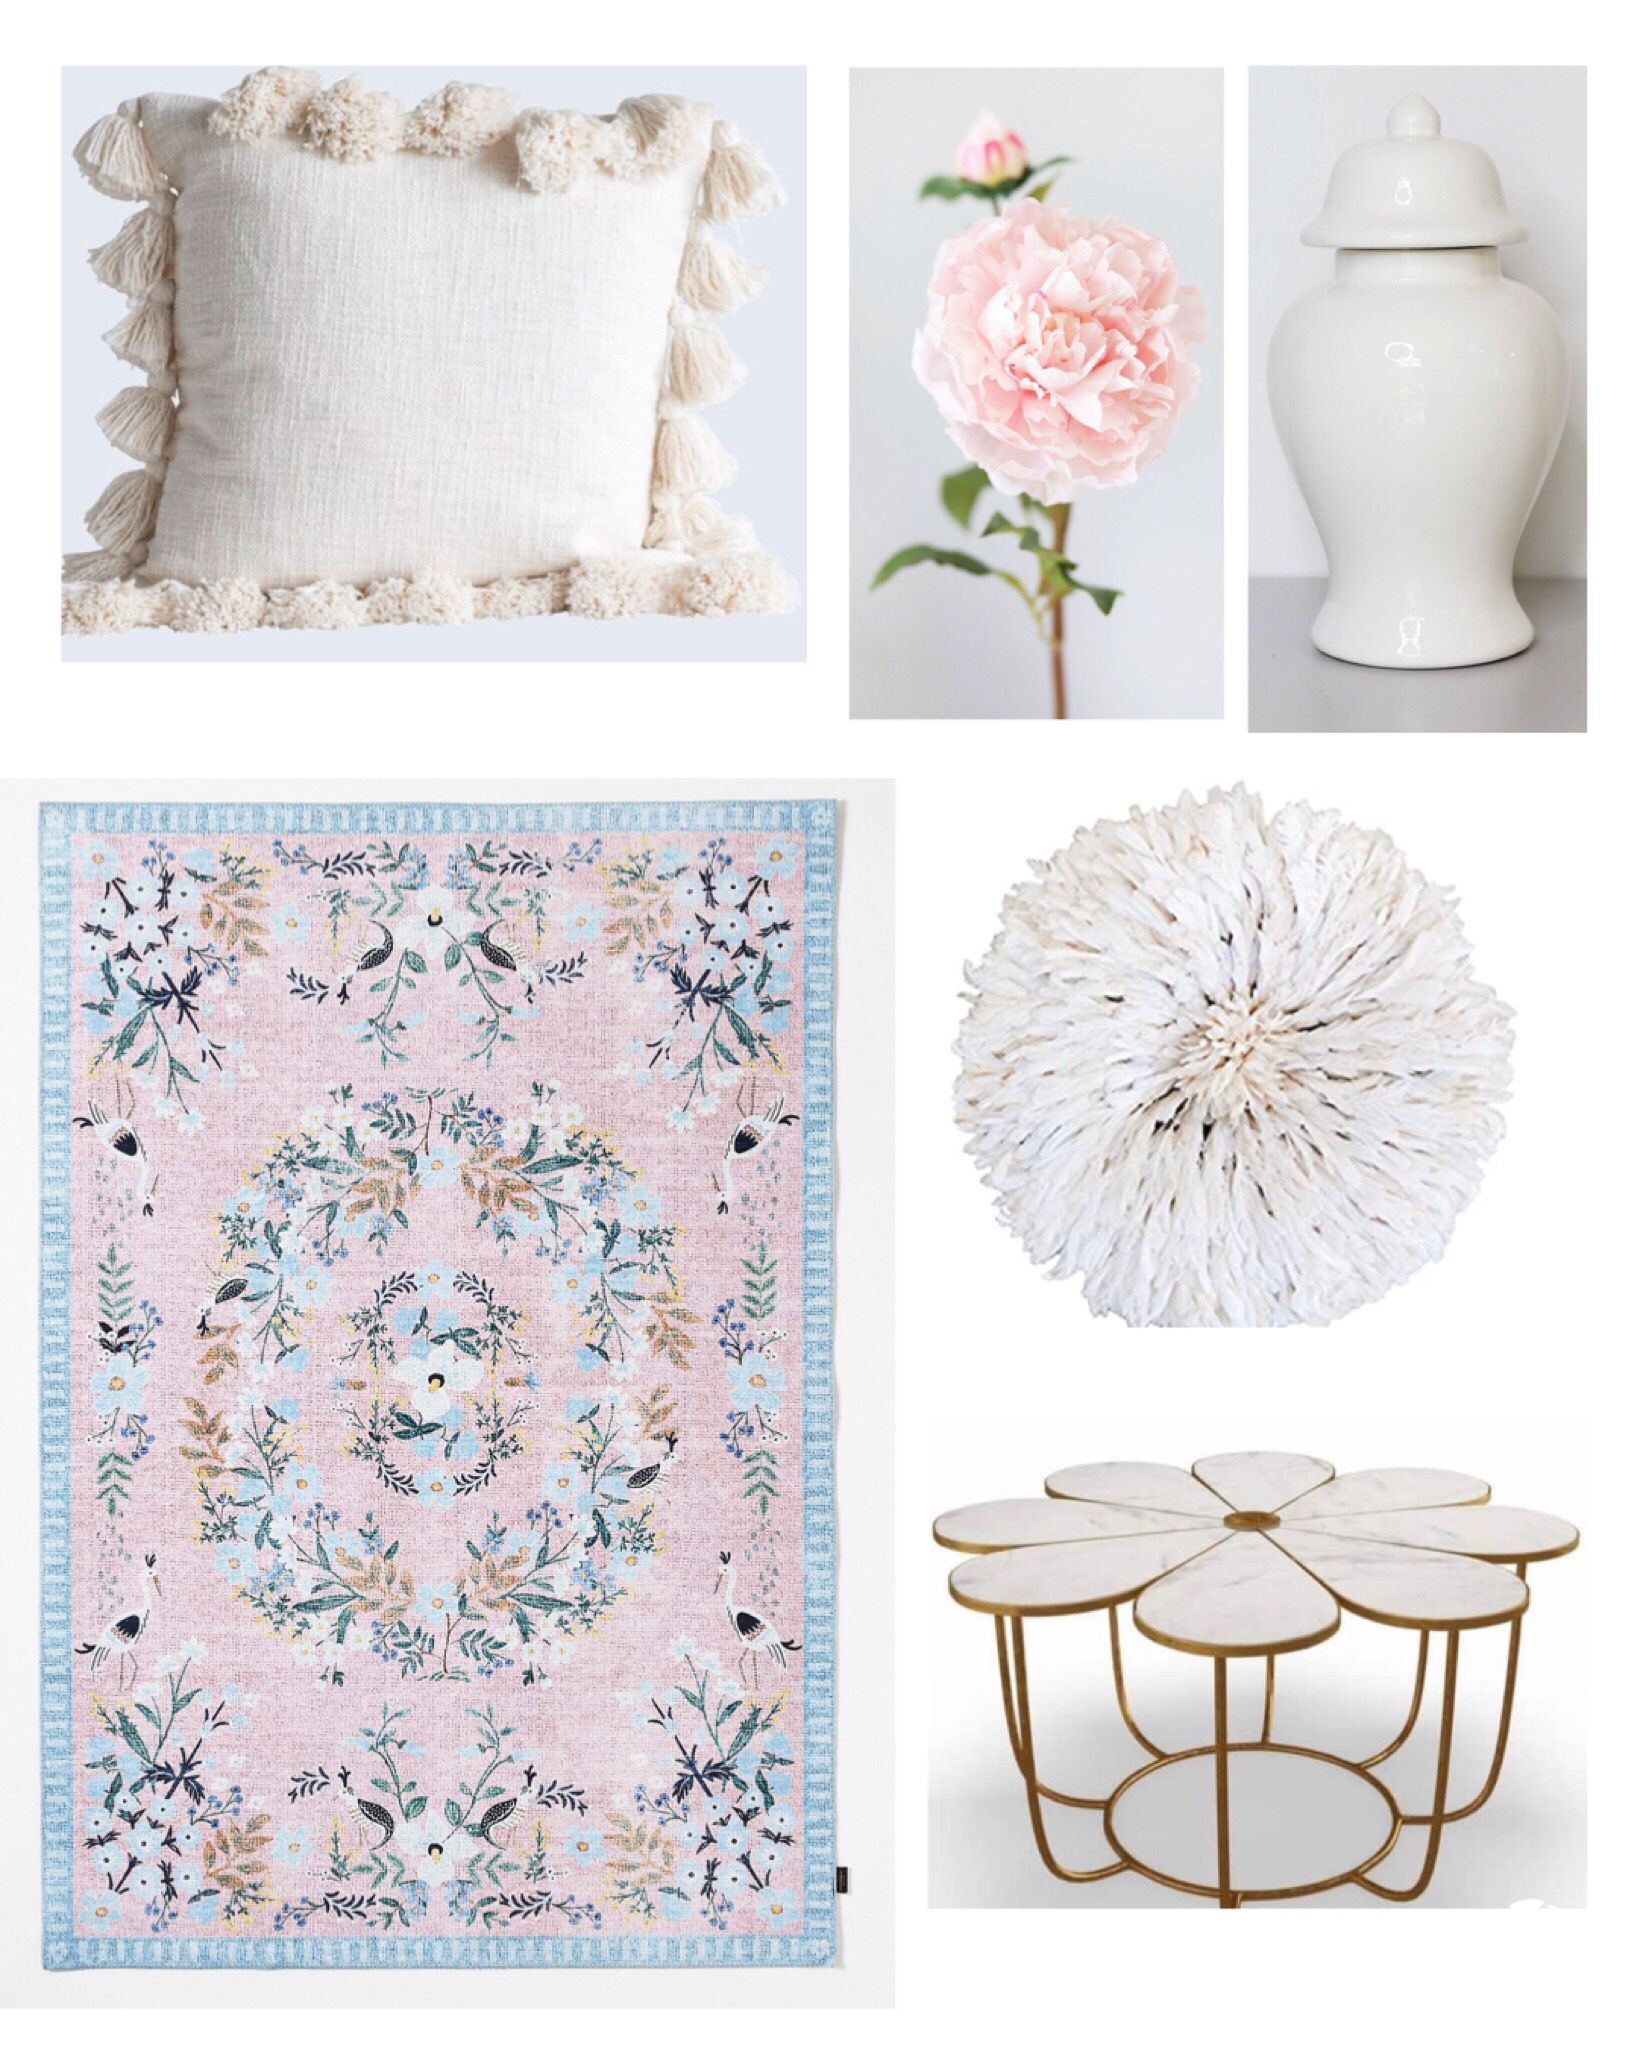 Pink home decor. Femine home decor. Spring and summer home decor. #home #homedecor #homedecorideas #masterbedroom #bedroom #bedroomdecor #livingroom #livingroomdecor #coffeetable #rugs #jujuhat #throwpillows #gingerjars #peonies #pinkpeonies #pinkhomedecor